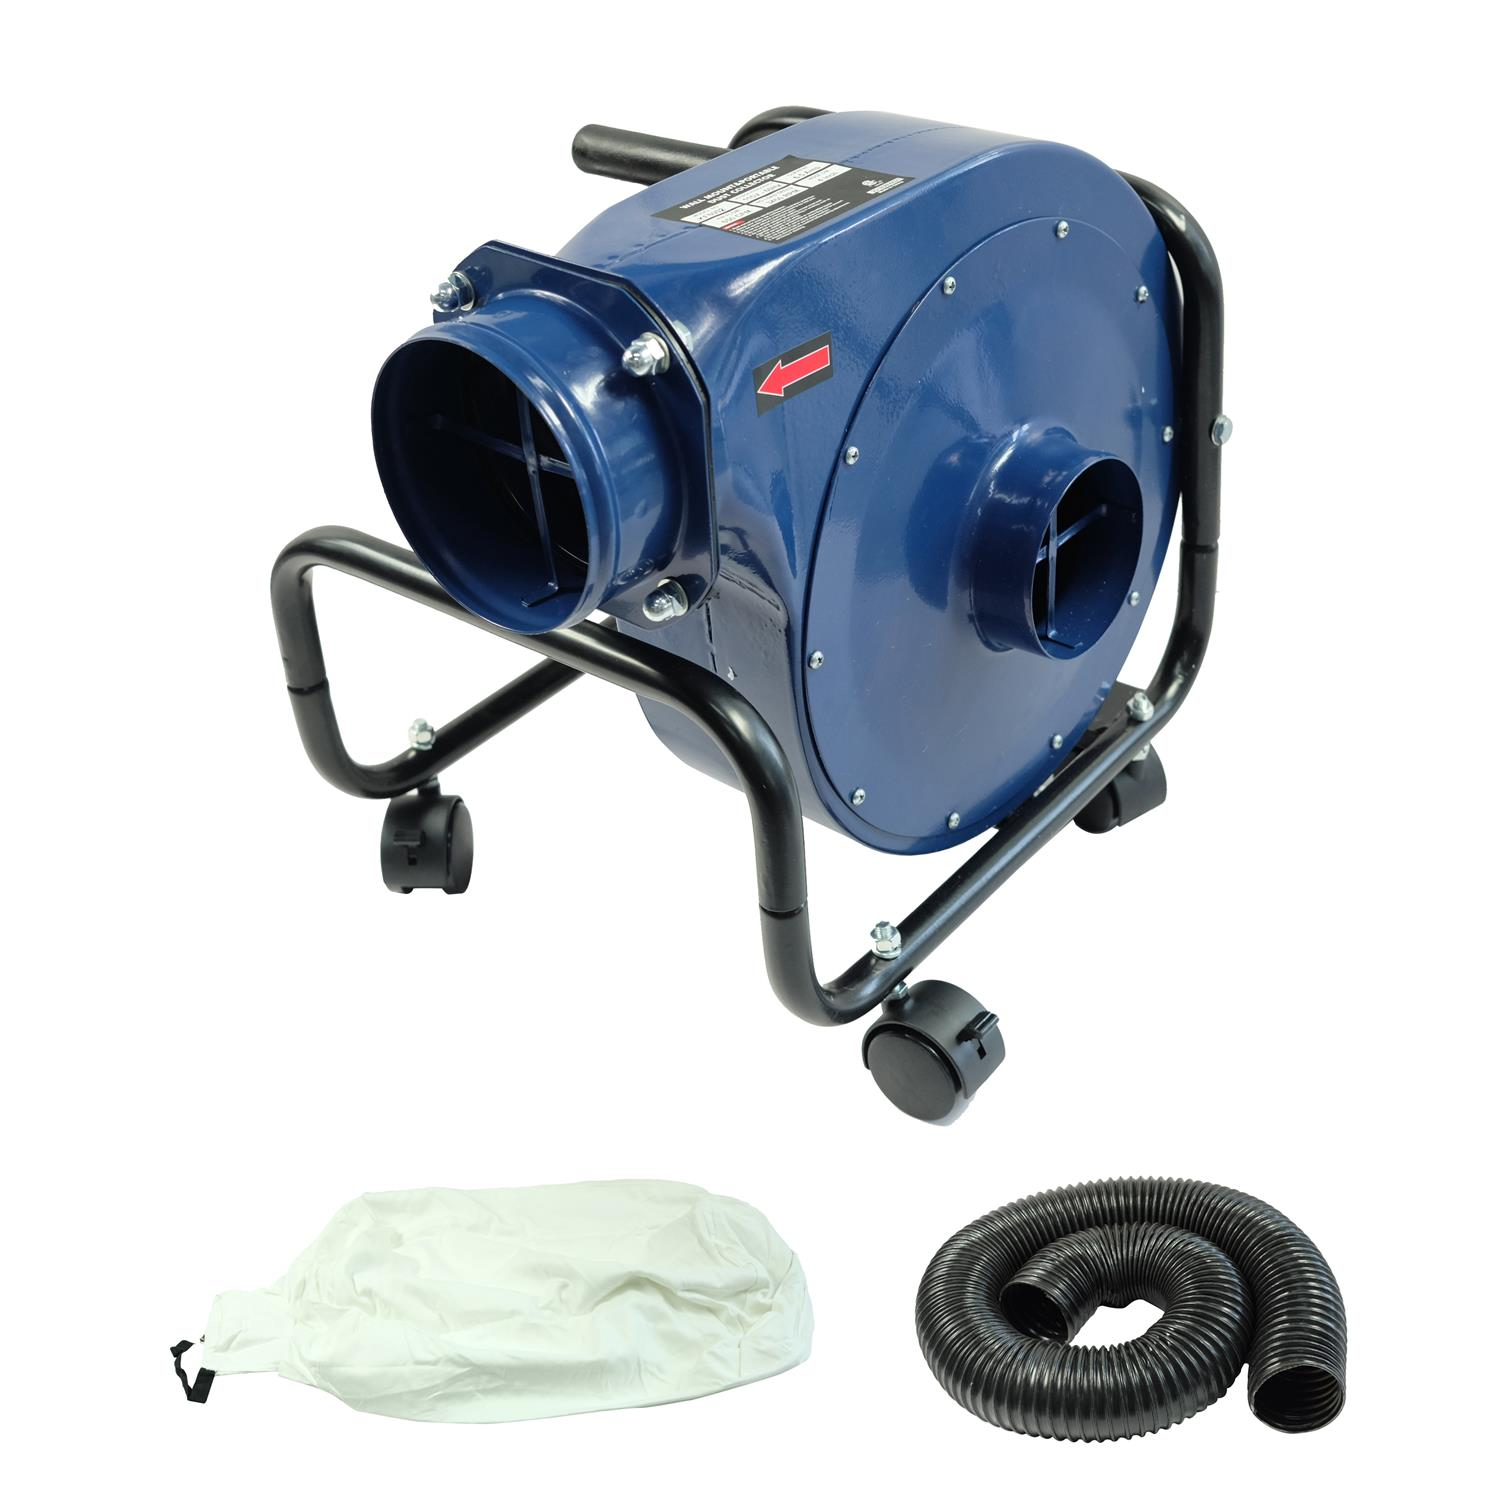 DC650 Portable Dust Collector